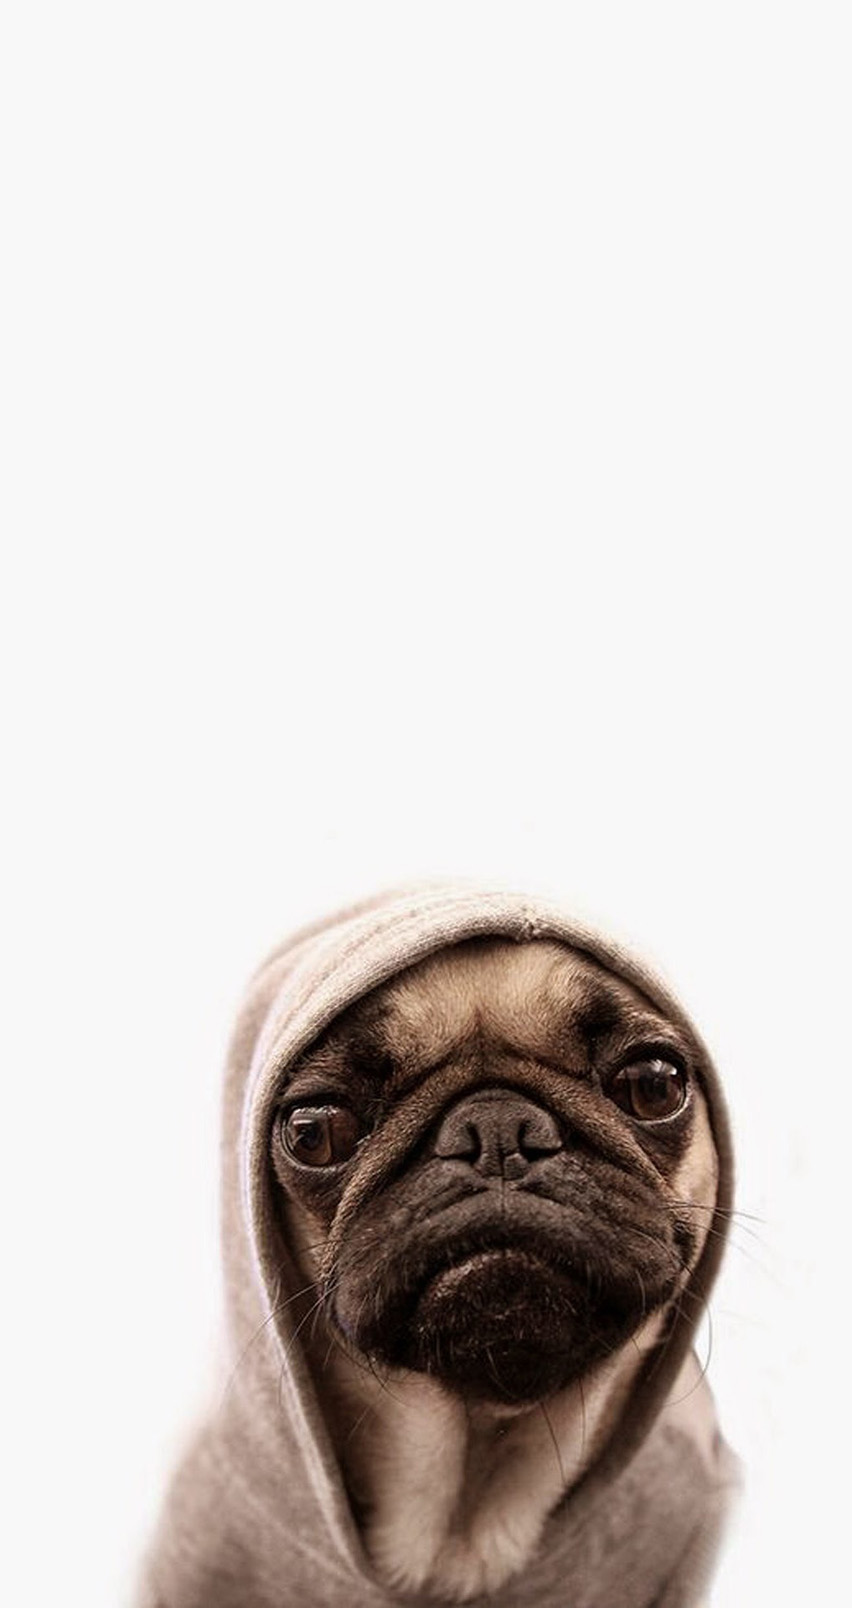 Cute-pug-Tap-for-more-Cute-Pug-Dog-HD-@mobile-for-iPhone-s-and-iPhone-wallpaper-wp3004715